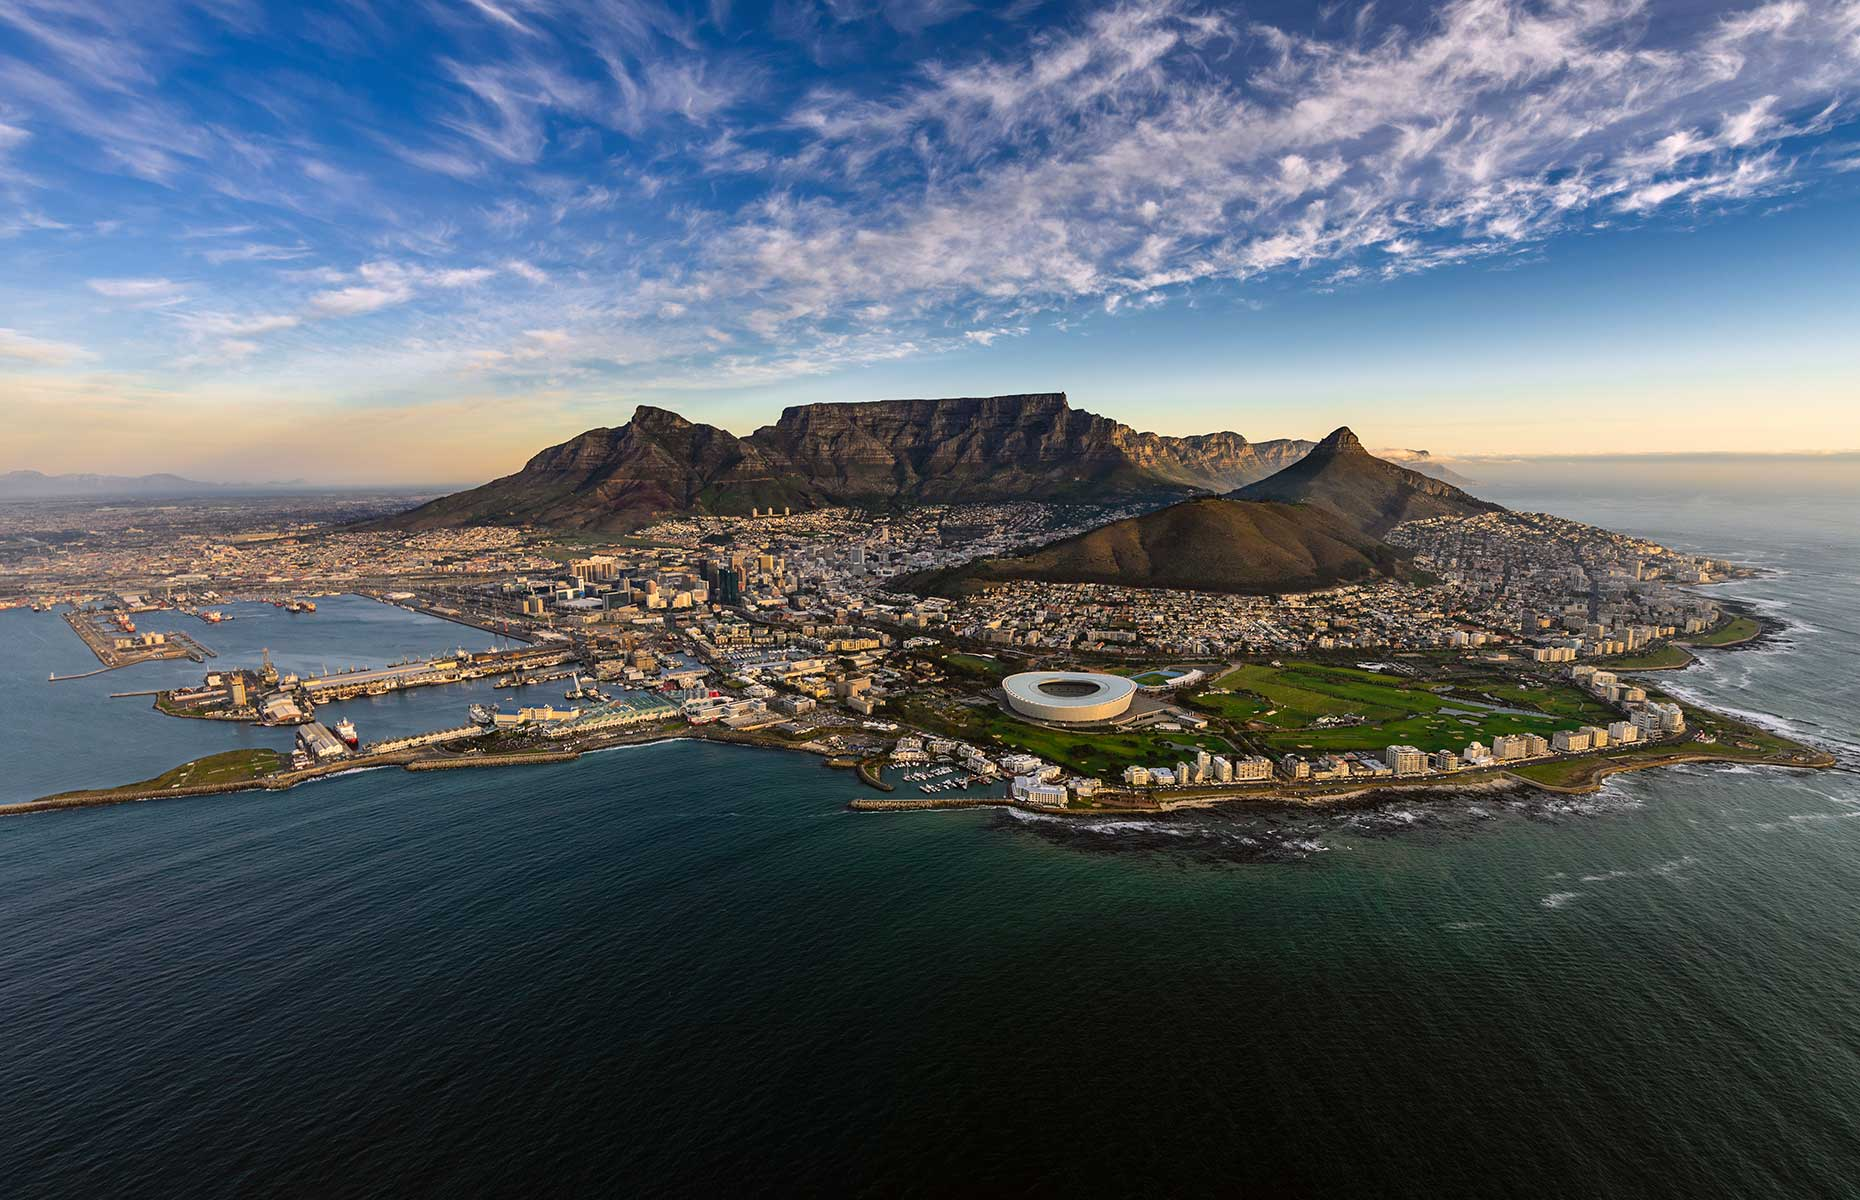 Cape Town, South Africa with a view of Table Mountain